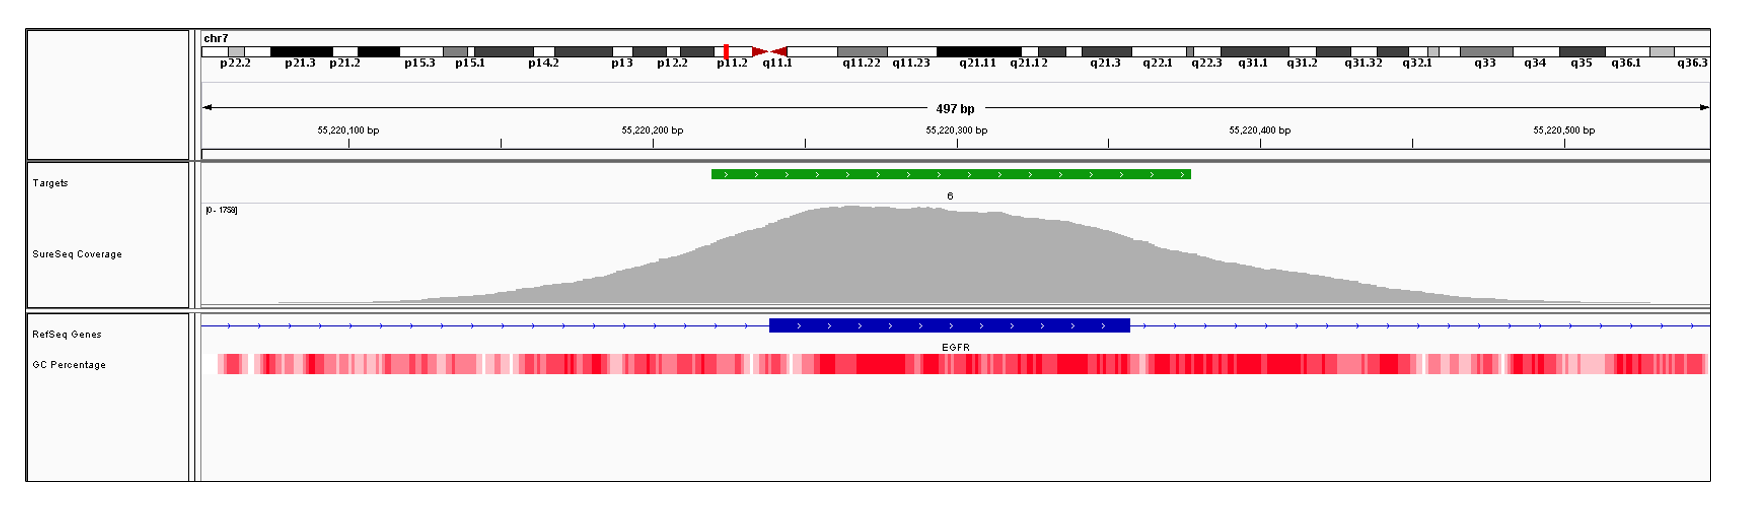 EGFR Exon 6 (hg19 chr7:55220239-55220357). Depth of coverage per base (grey). Targeted region (green). Gene coding region as defined by RefSeq (blue). GC percentage (red). Image